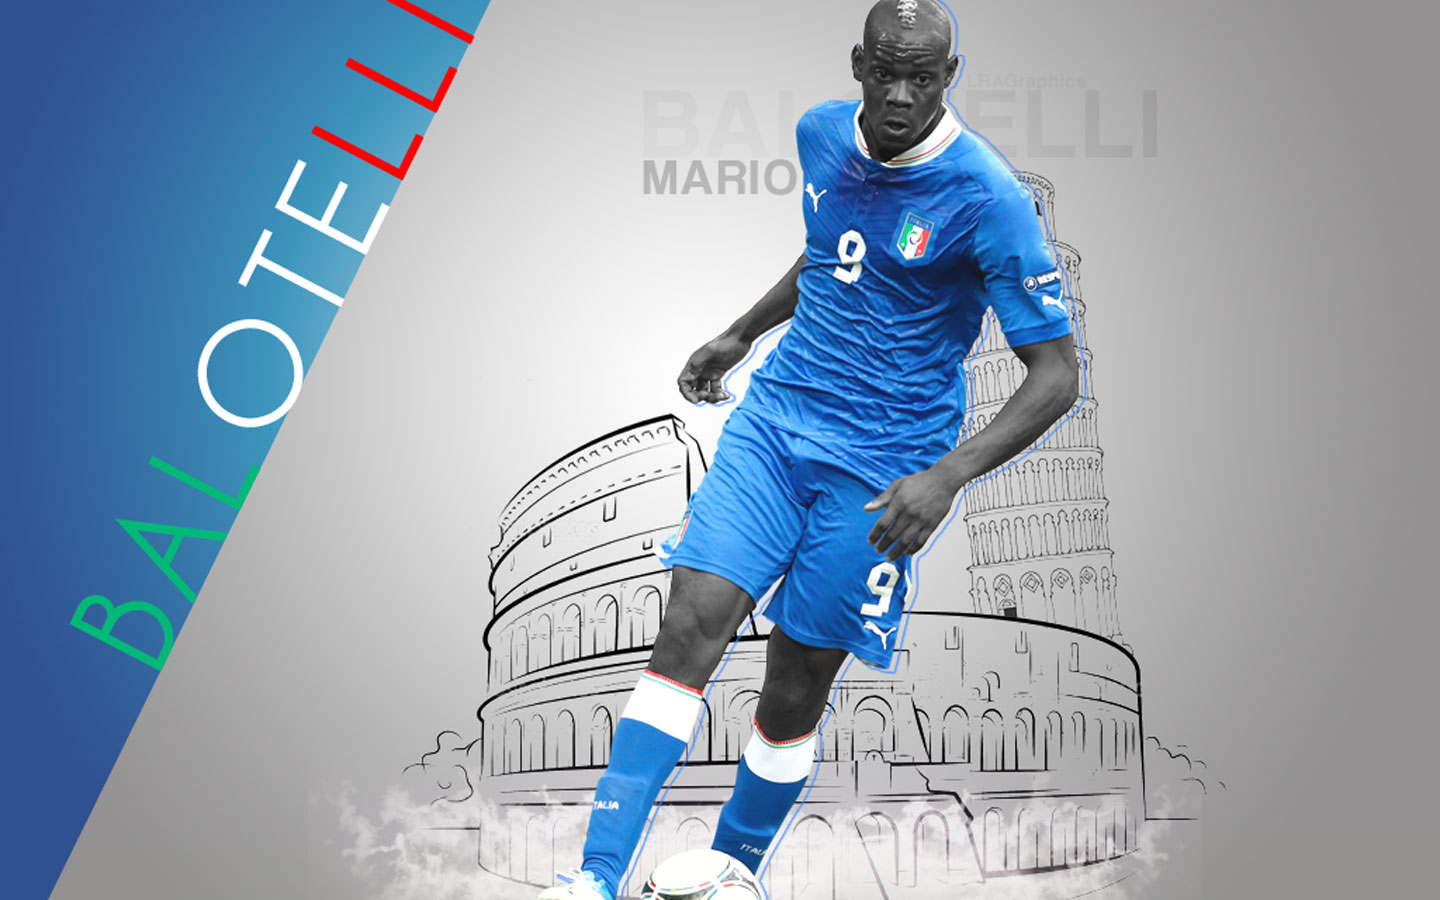 Mario balotelli wallpaper